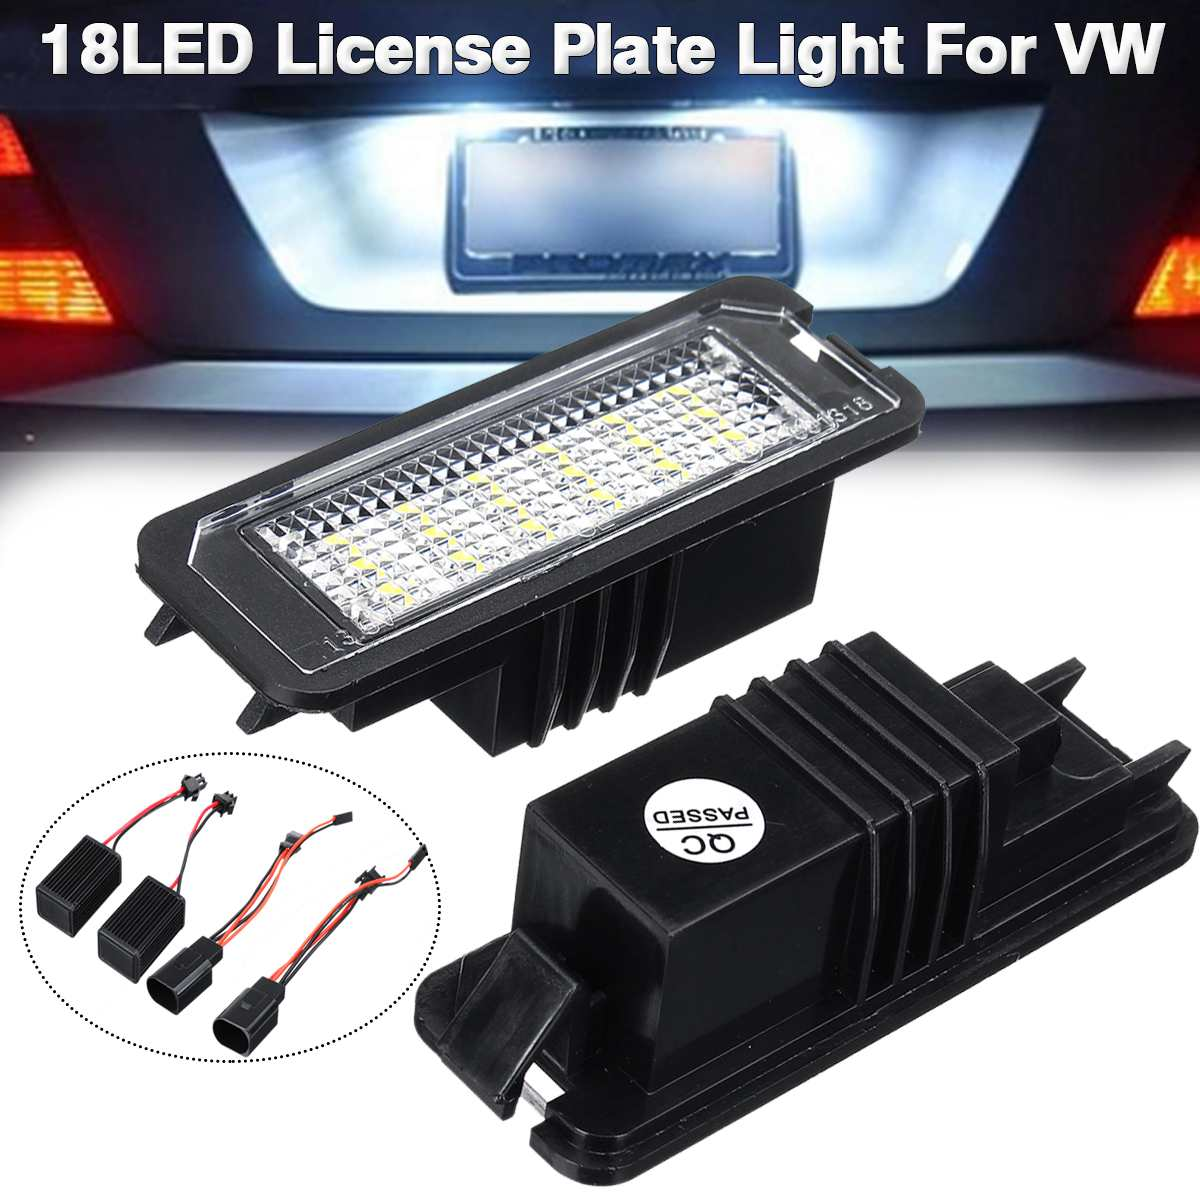 2pcs Universal 12V 18 <font><b>LED</b></font> Car Number License Tail Plate <font><b>Lights</b></font> <font><b>Light</b></font> Bulb For VW <font><b>GOLF</b></font> 4 <font><b>5</b></font> 6 7 6R Passat B6 Lupo Scirocco Polo image